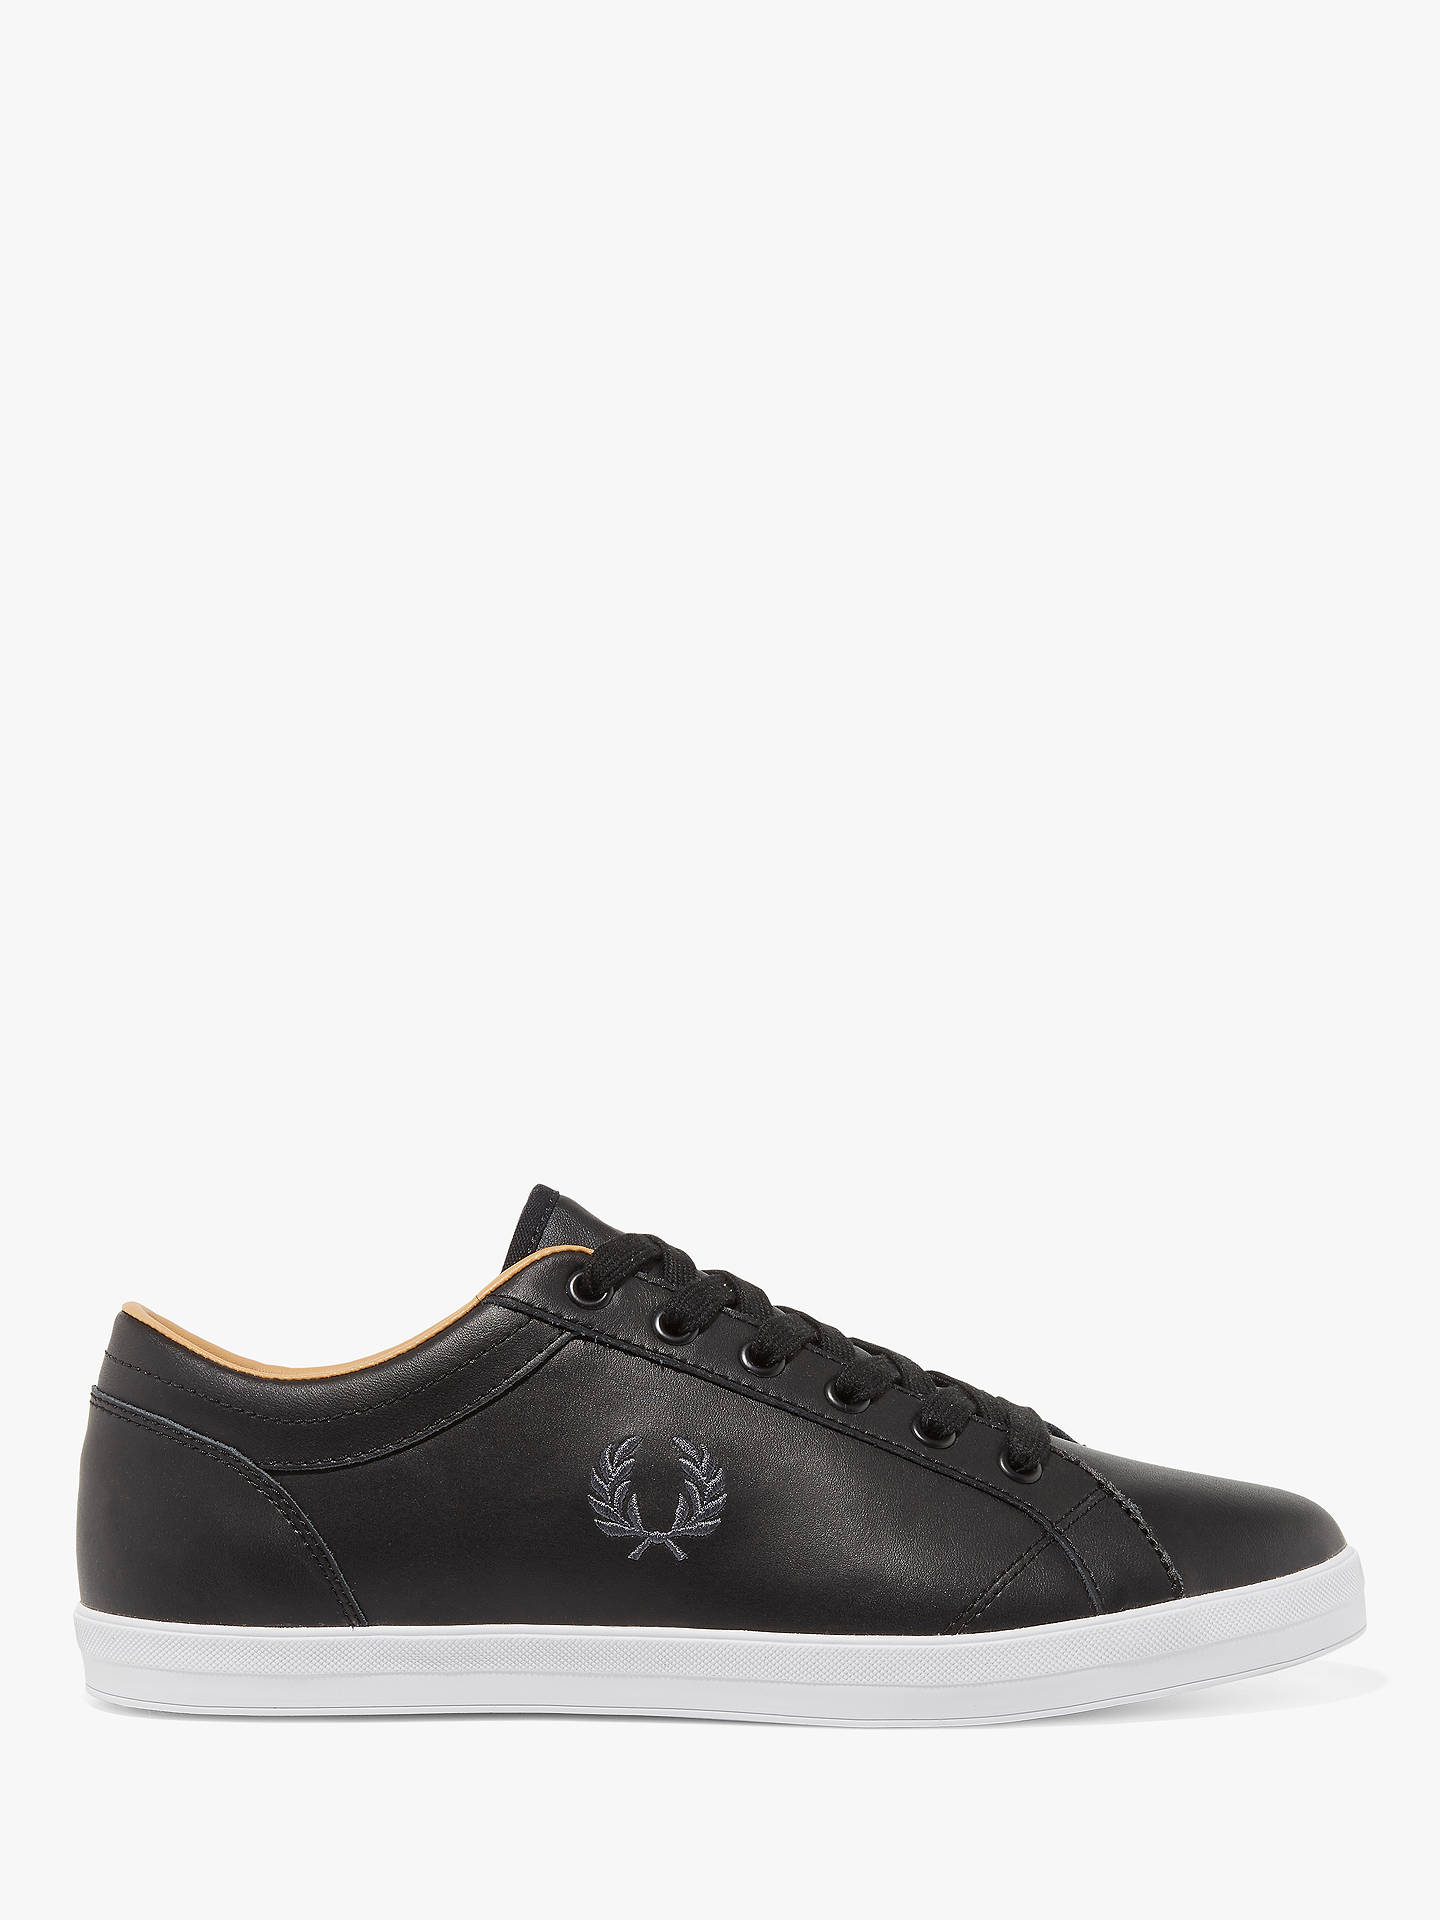 new list low priced amazon Fred Perry Baseline Leather Trainers, Black at John Lewis & Partners